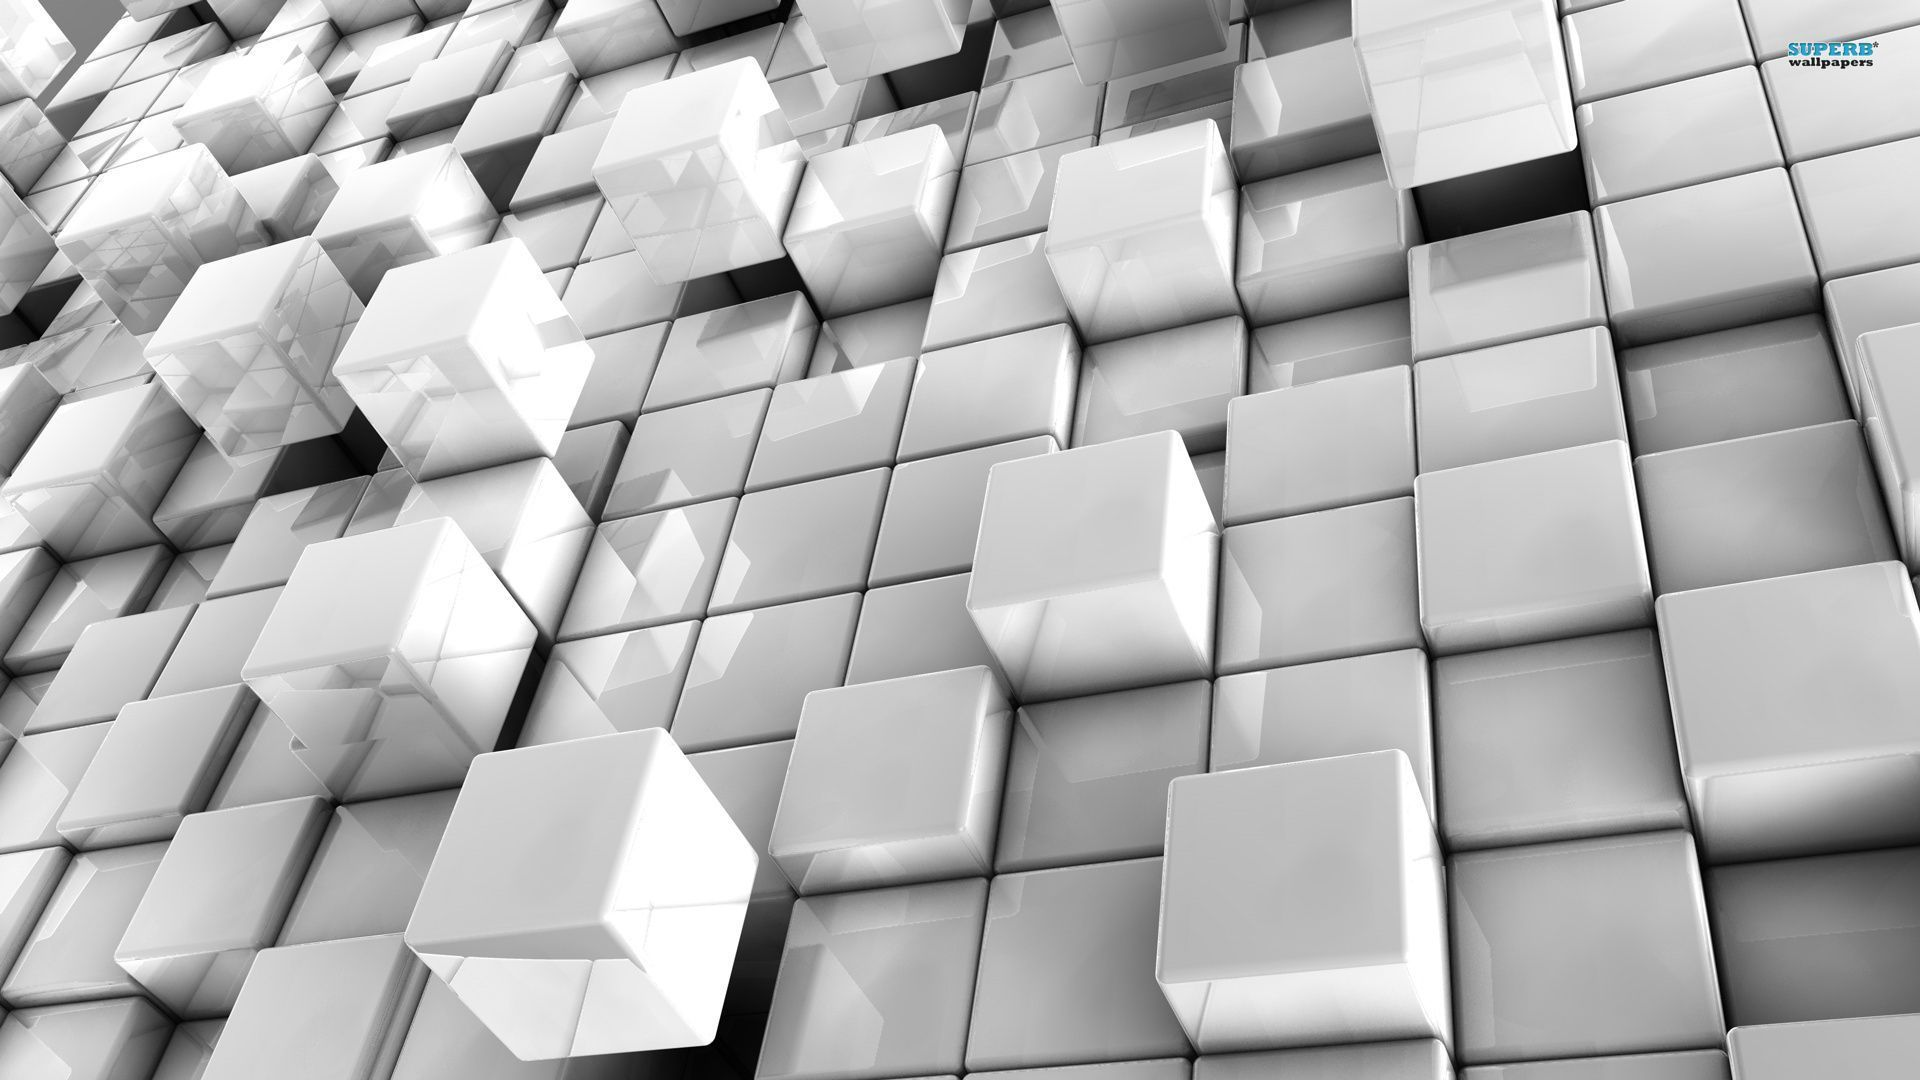 abstract in white cubes wallpaper mixhd wallpapers ilustrações